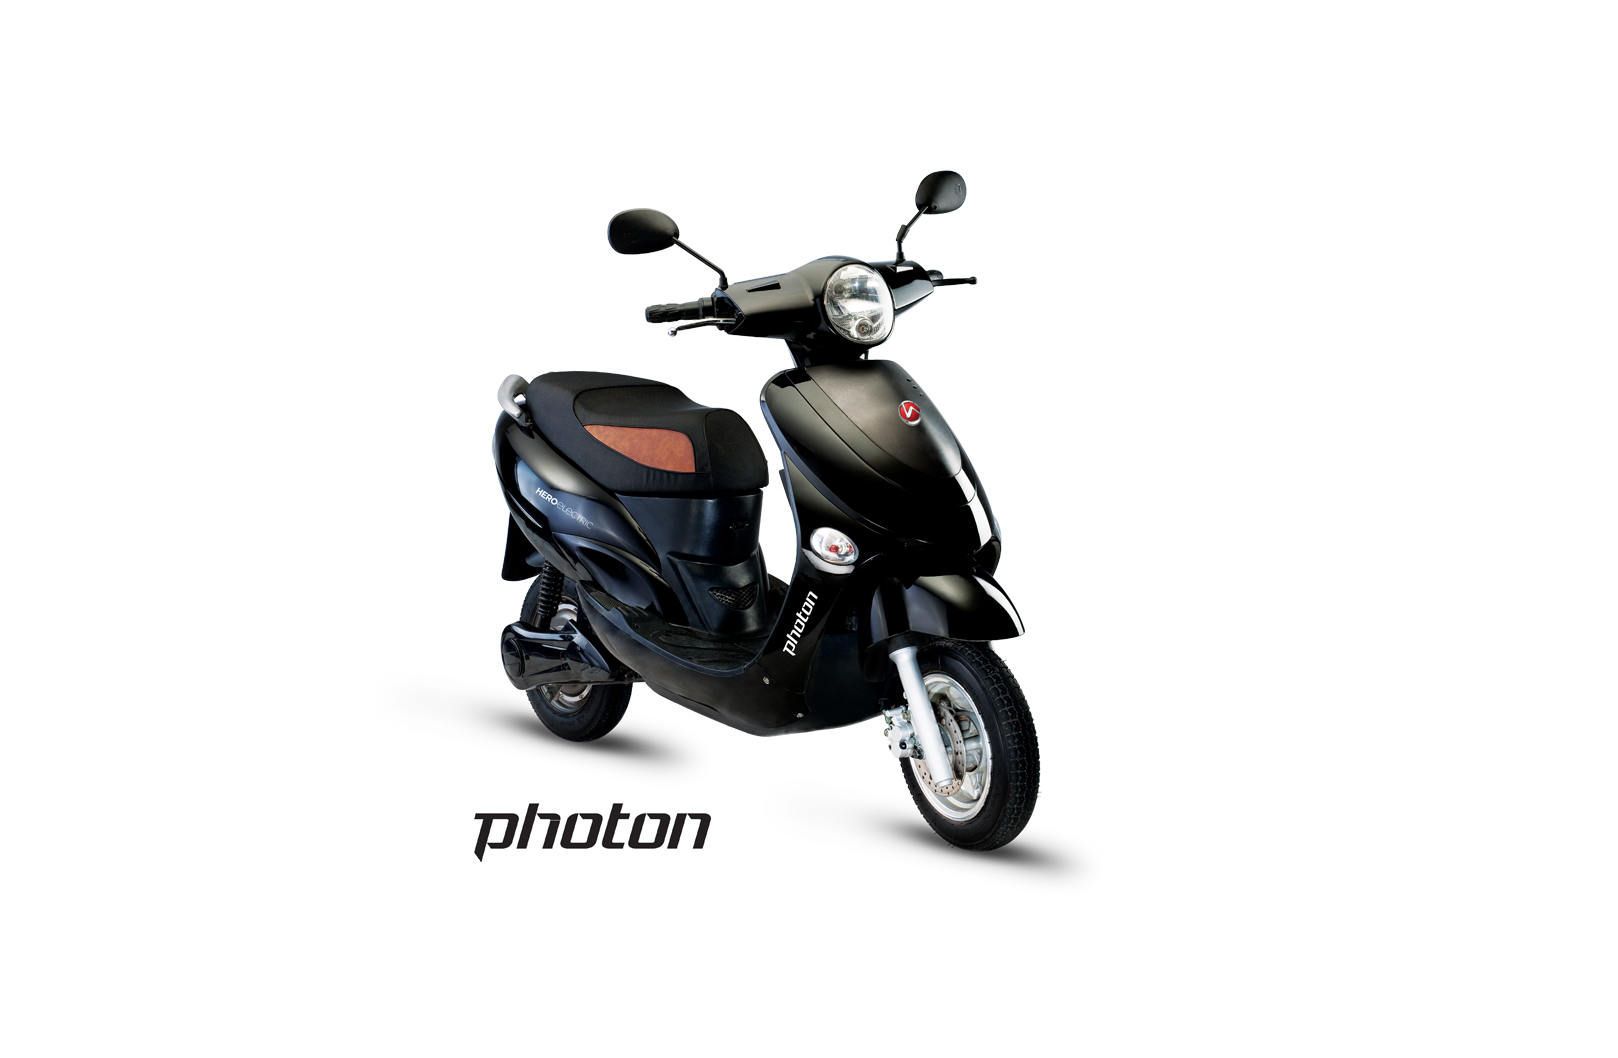 Hero Electric Photon scooter launched at Rs. 41,990